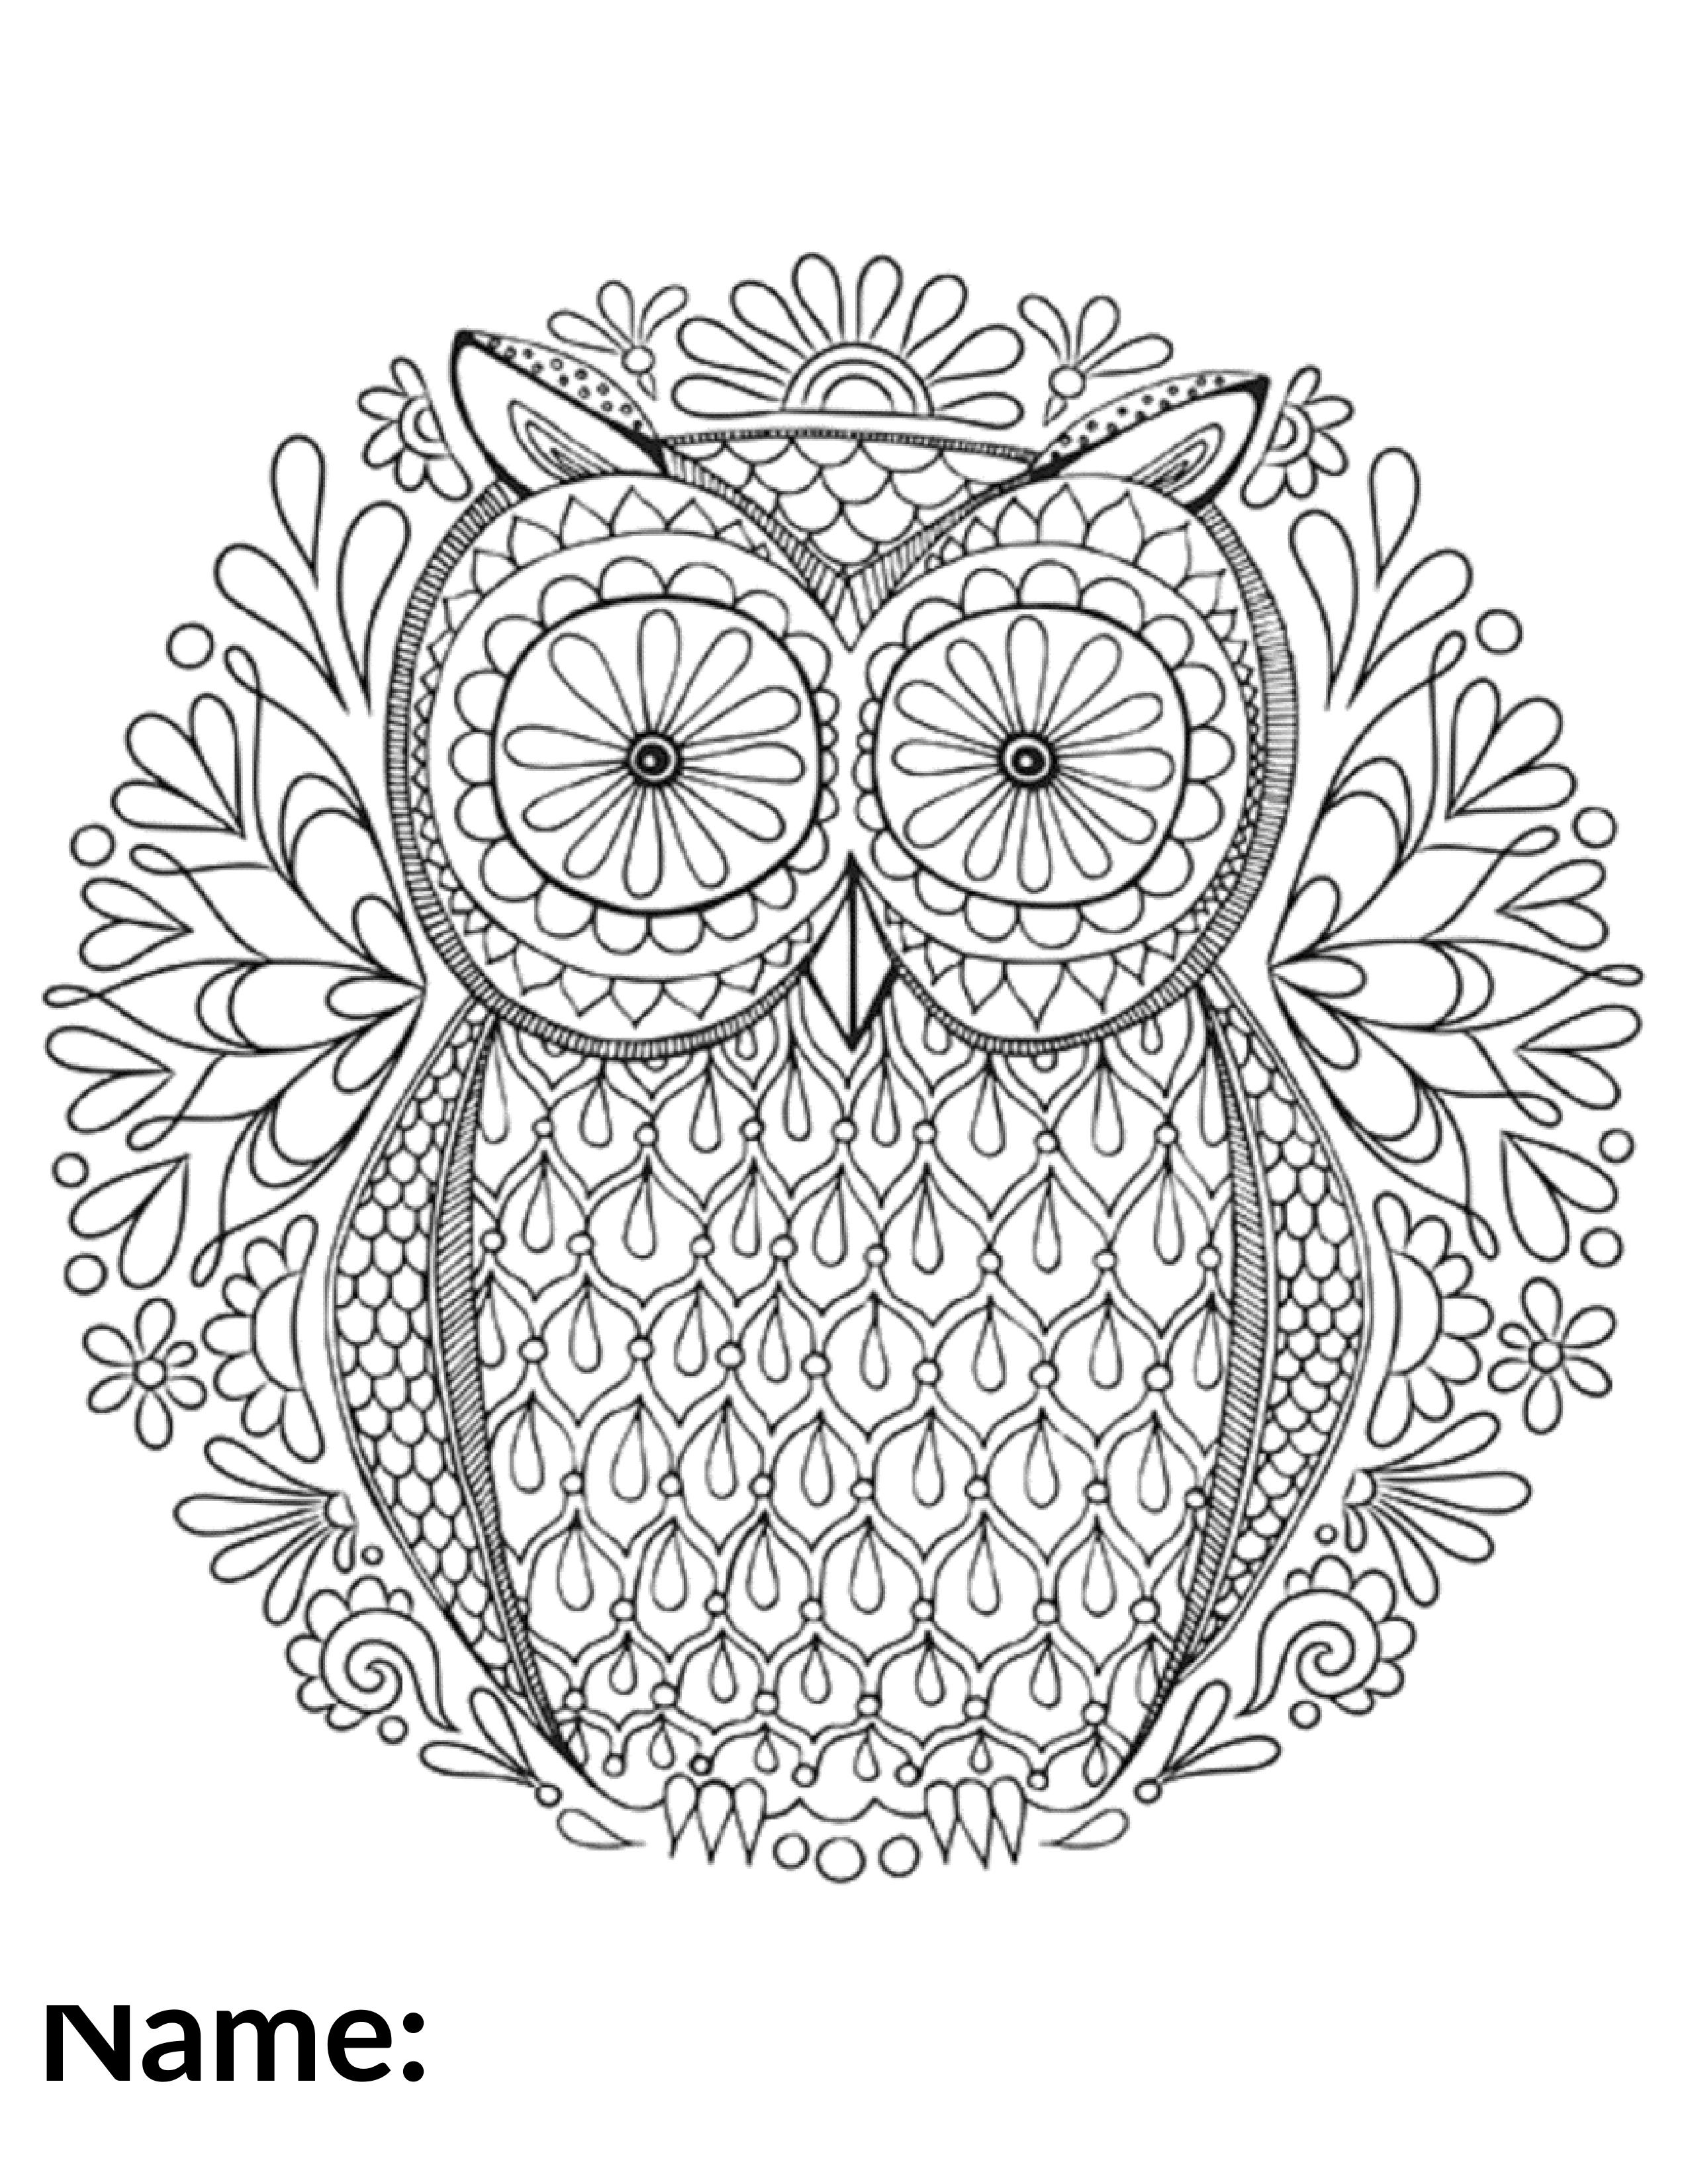 2020 Owl - Coloring Contest